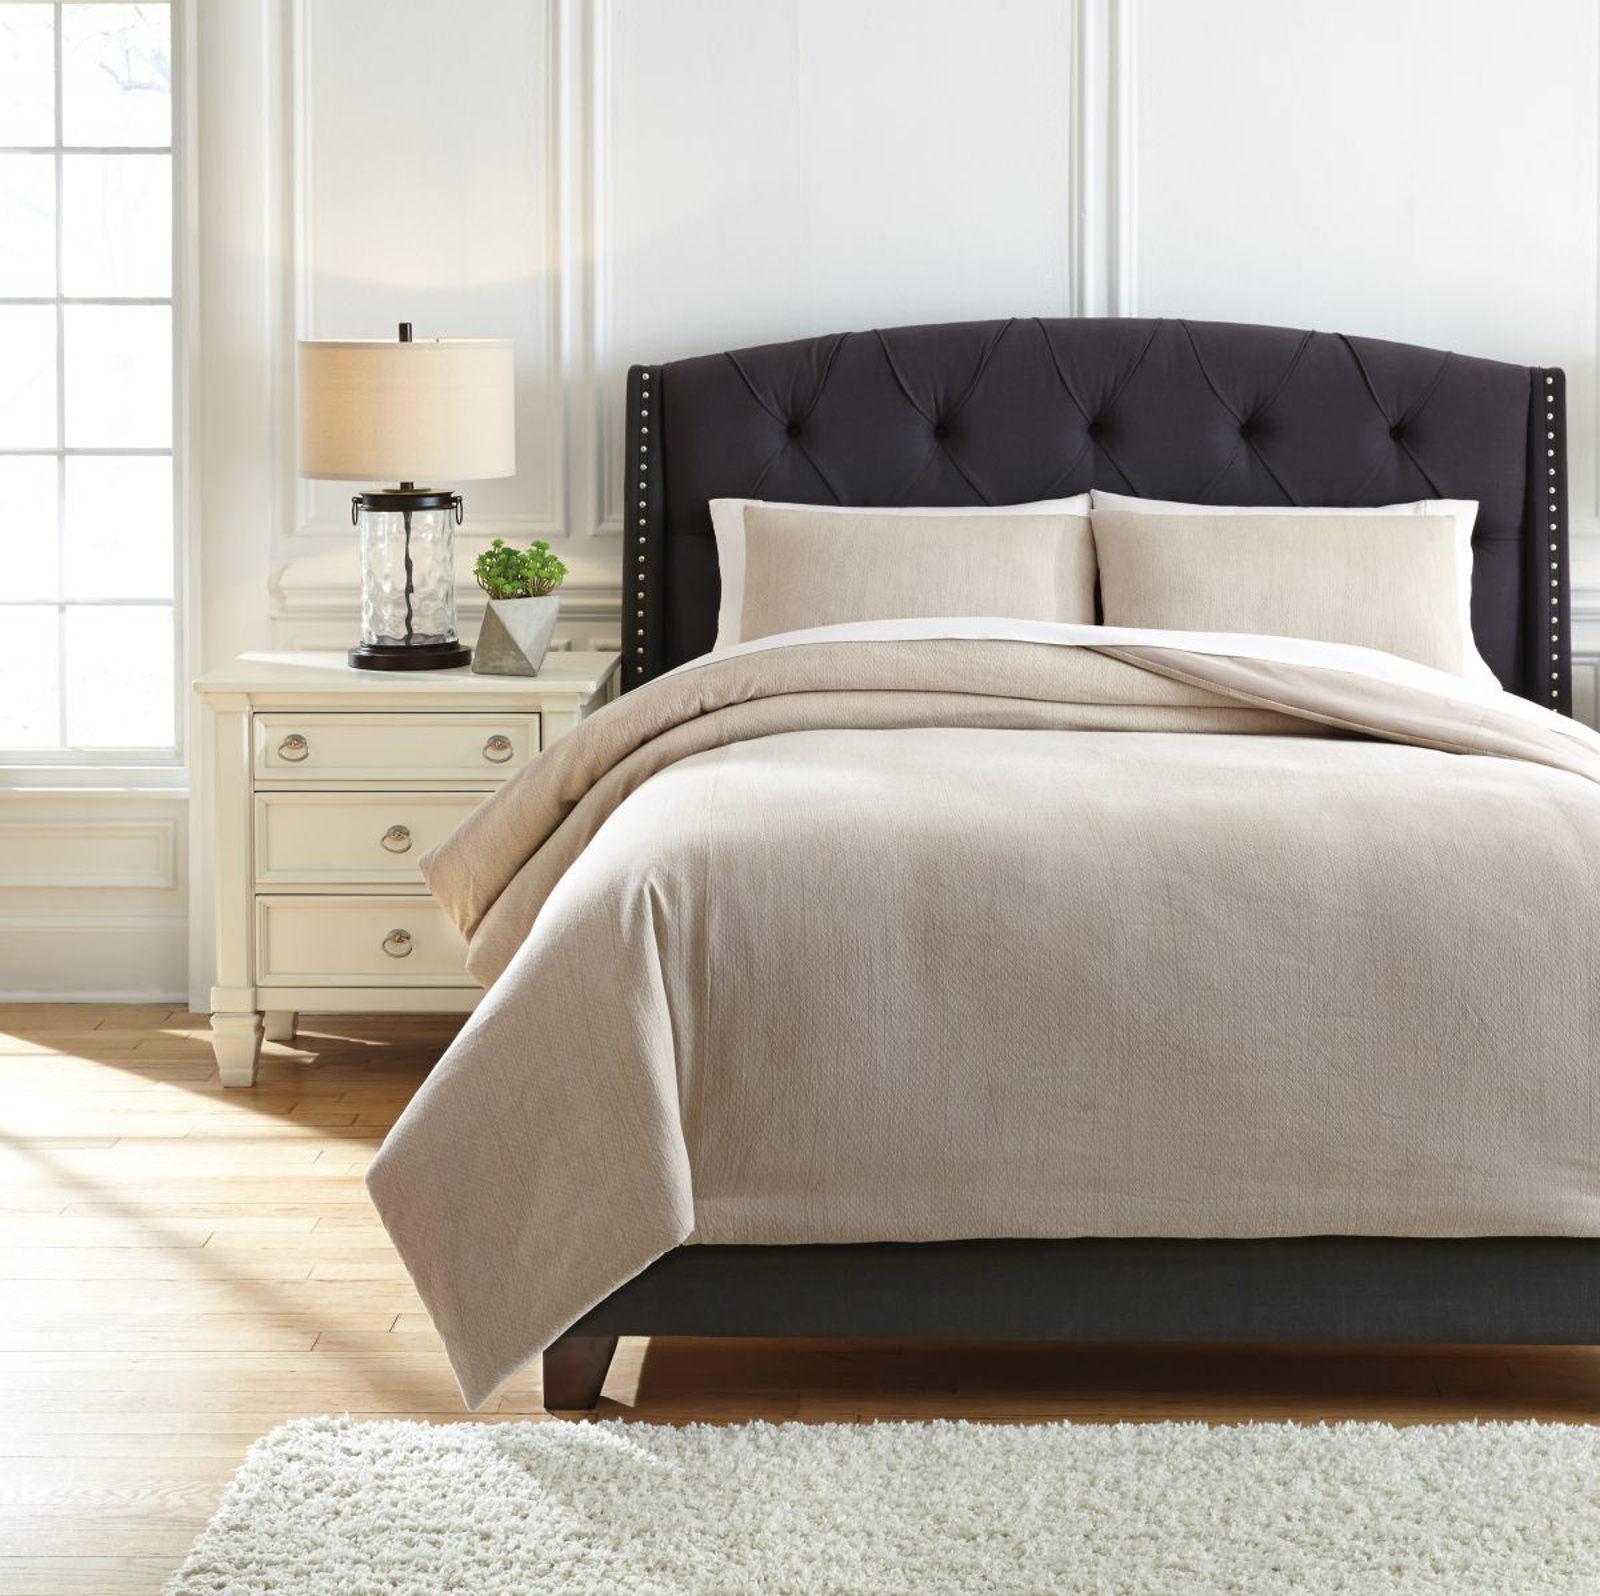 Picture of Mayda King Comforter Set